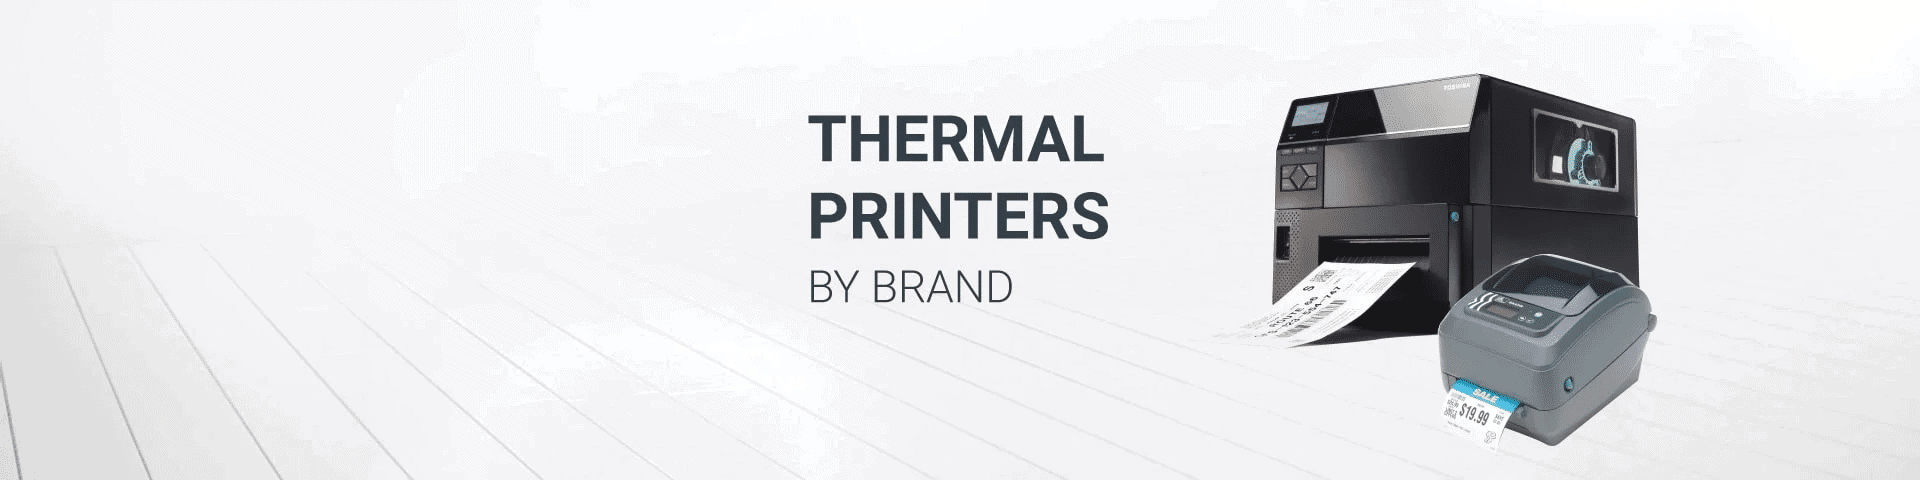 thermal printers by brand